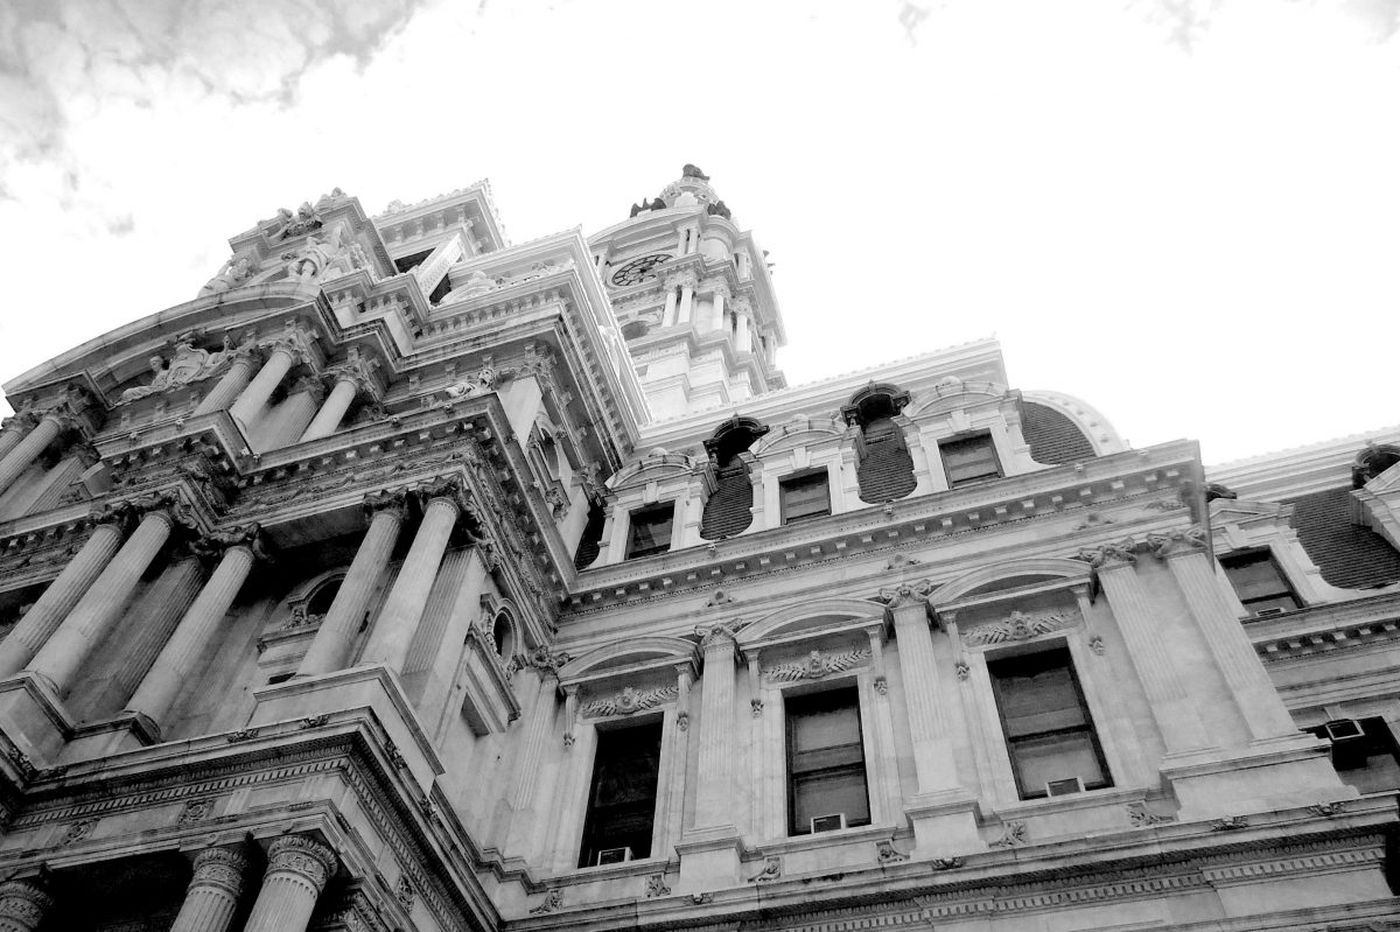 Philly tax question: Should corporate visitors worry they'll get hit?